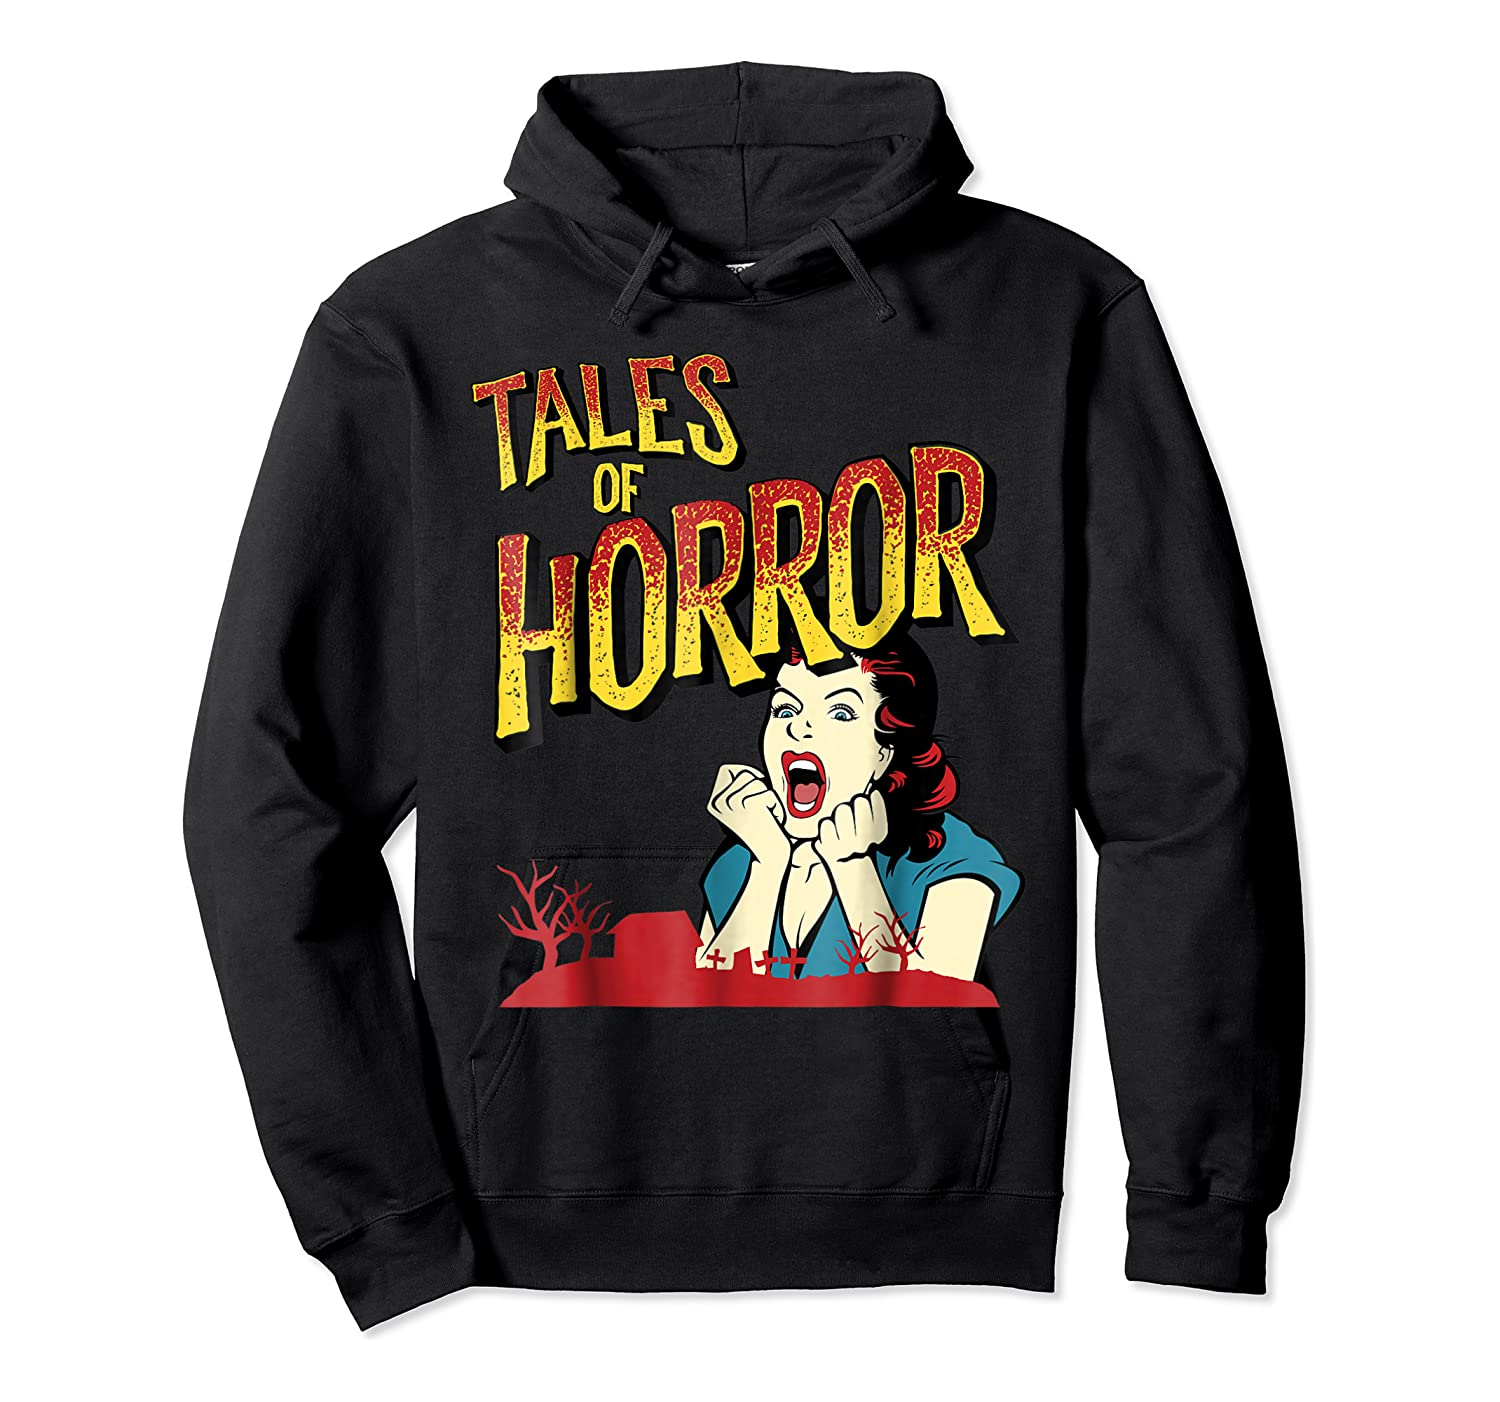 Vintage Horror Movie Poster Funny Halloween Shirts Unisex Pullover Hoodie